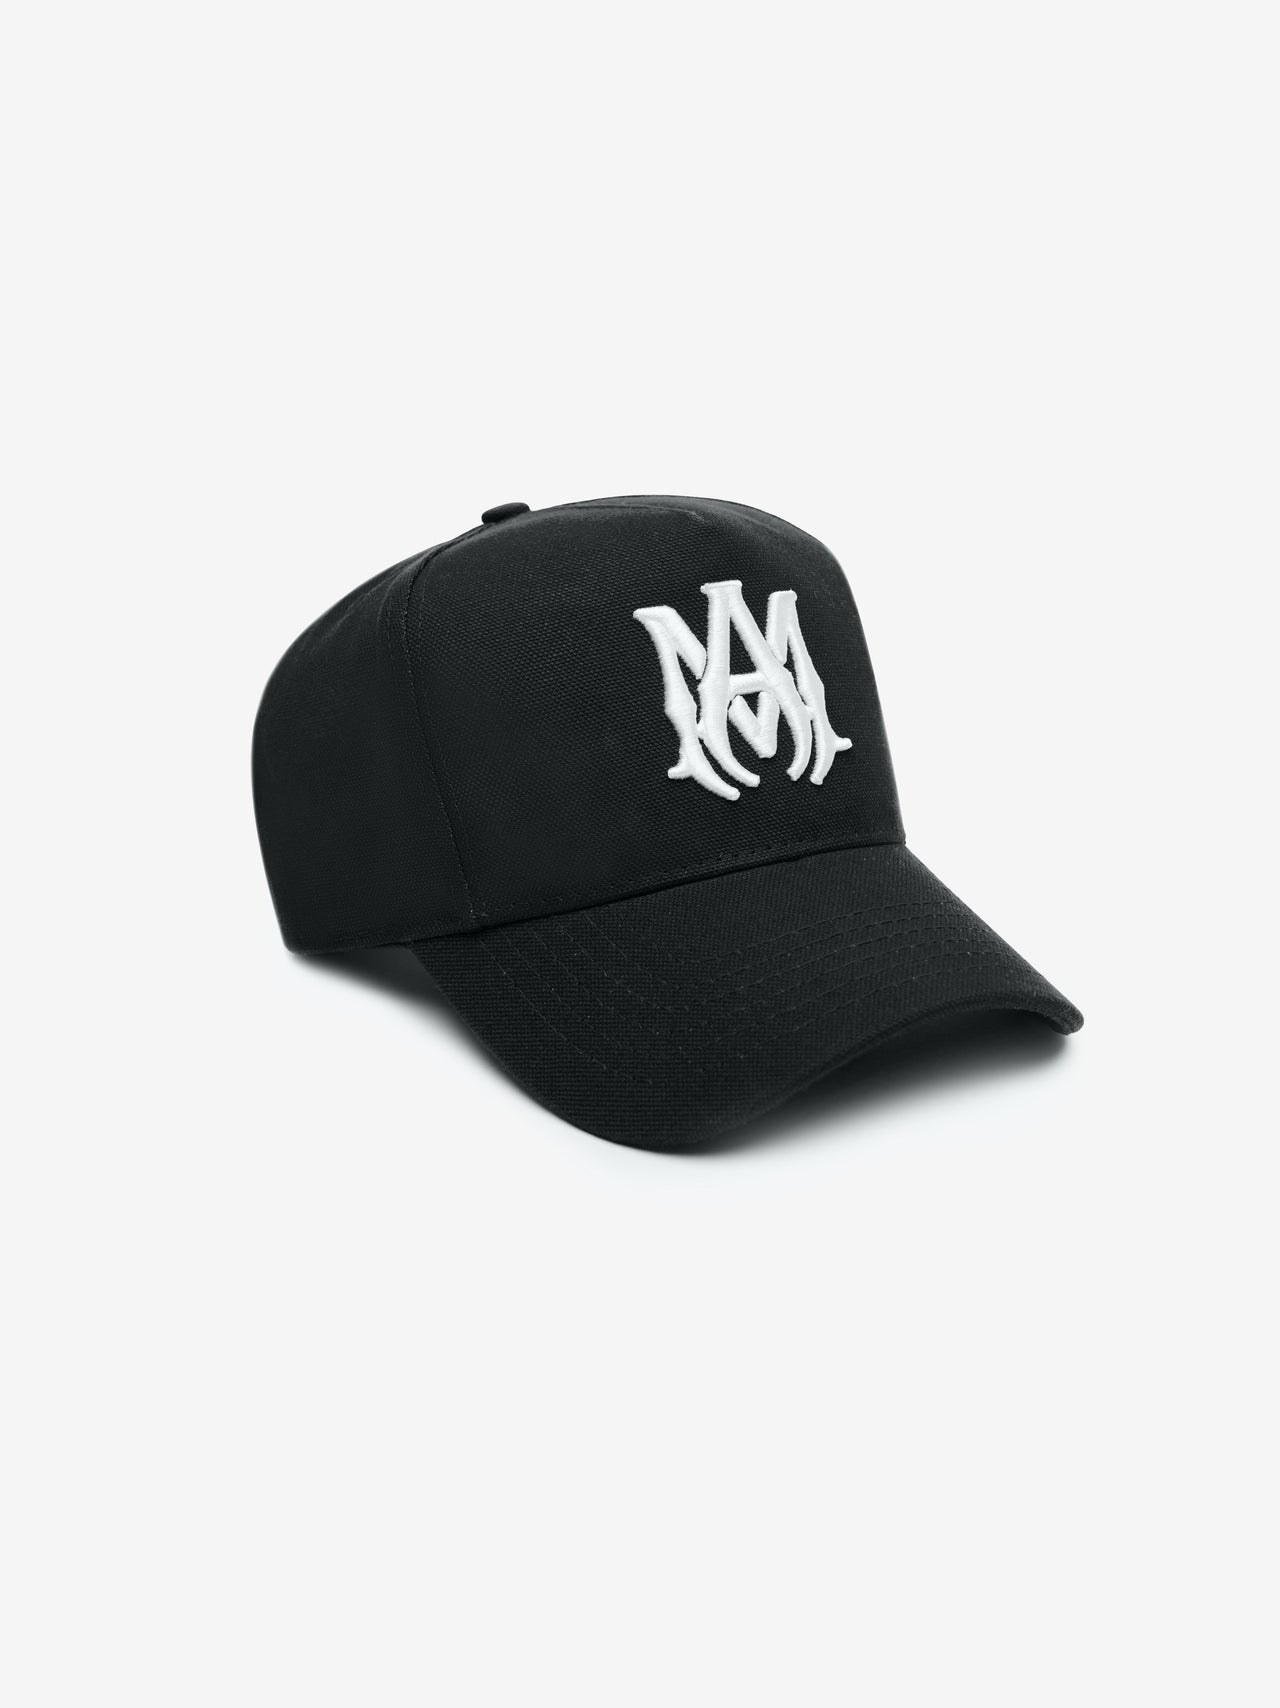 MA FULL CANVAS HAT - Black / White